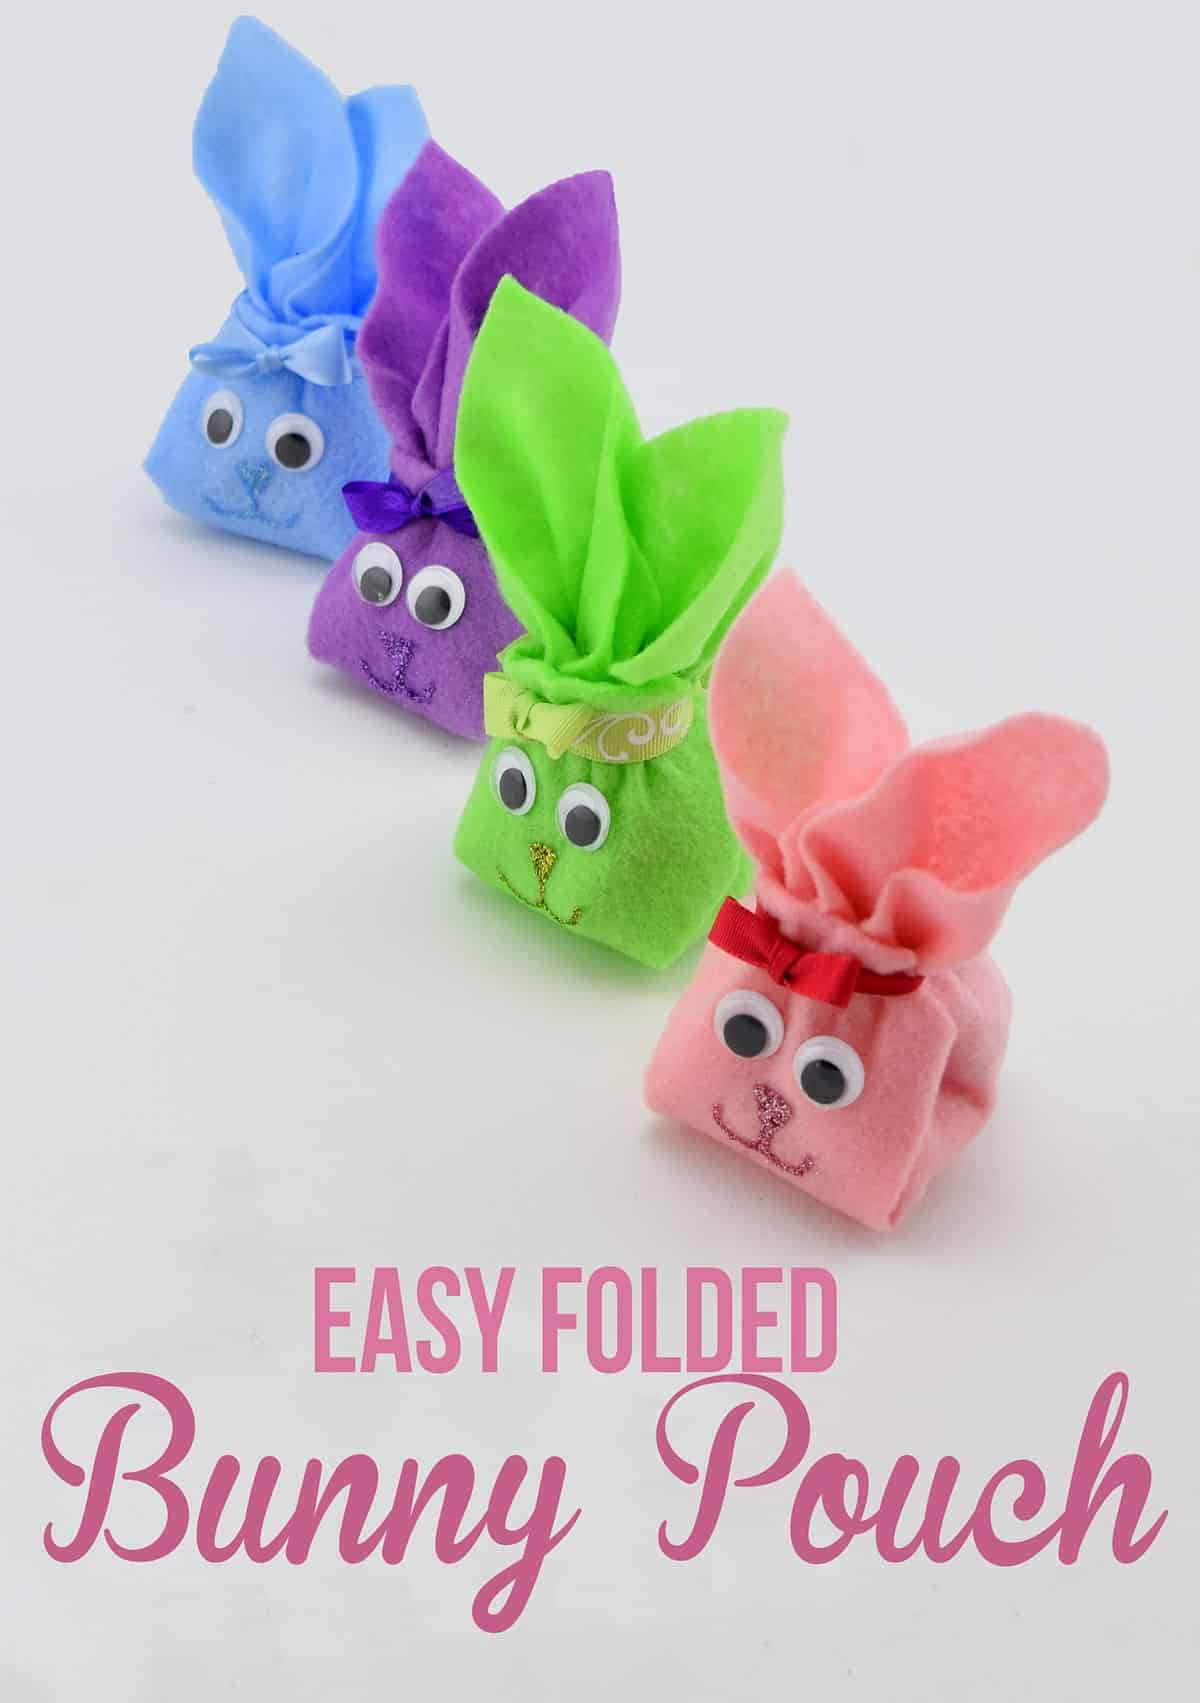 Colorful folded felt bunnies with googly eyes, ribbon, and glitter faces in a row on white surface.